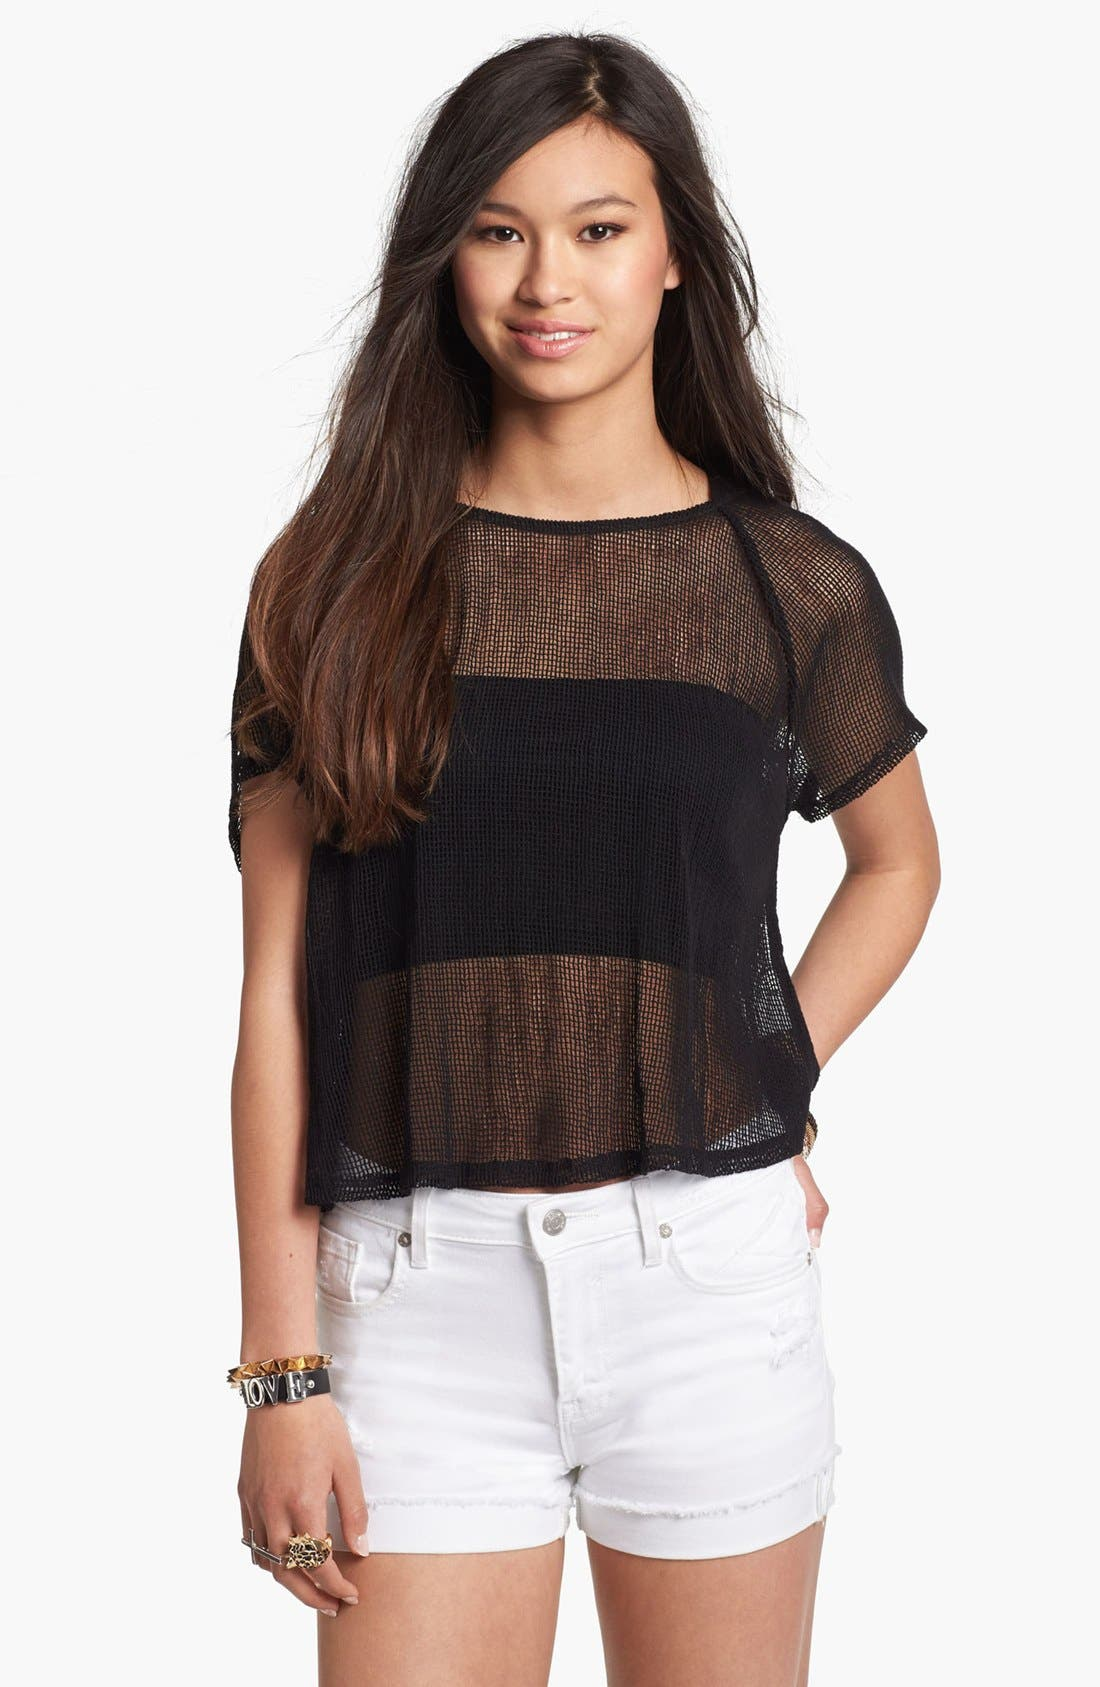 Alternate Image 1 Selected - Lush Cutout Knit Crop Top (Juniors) (Online Only)